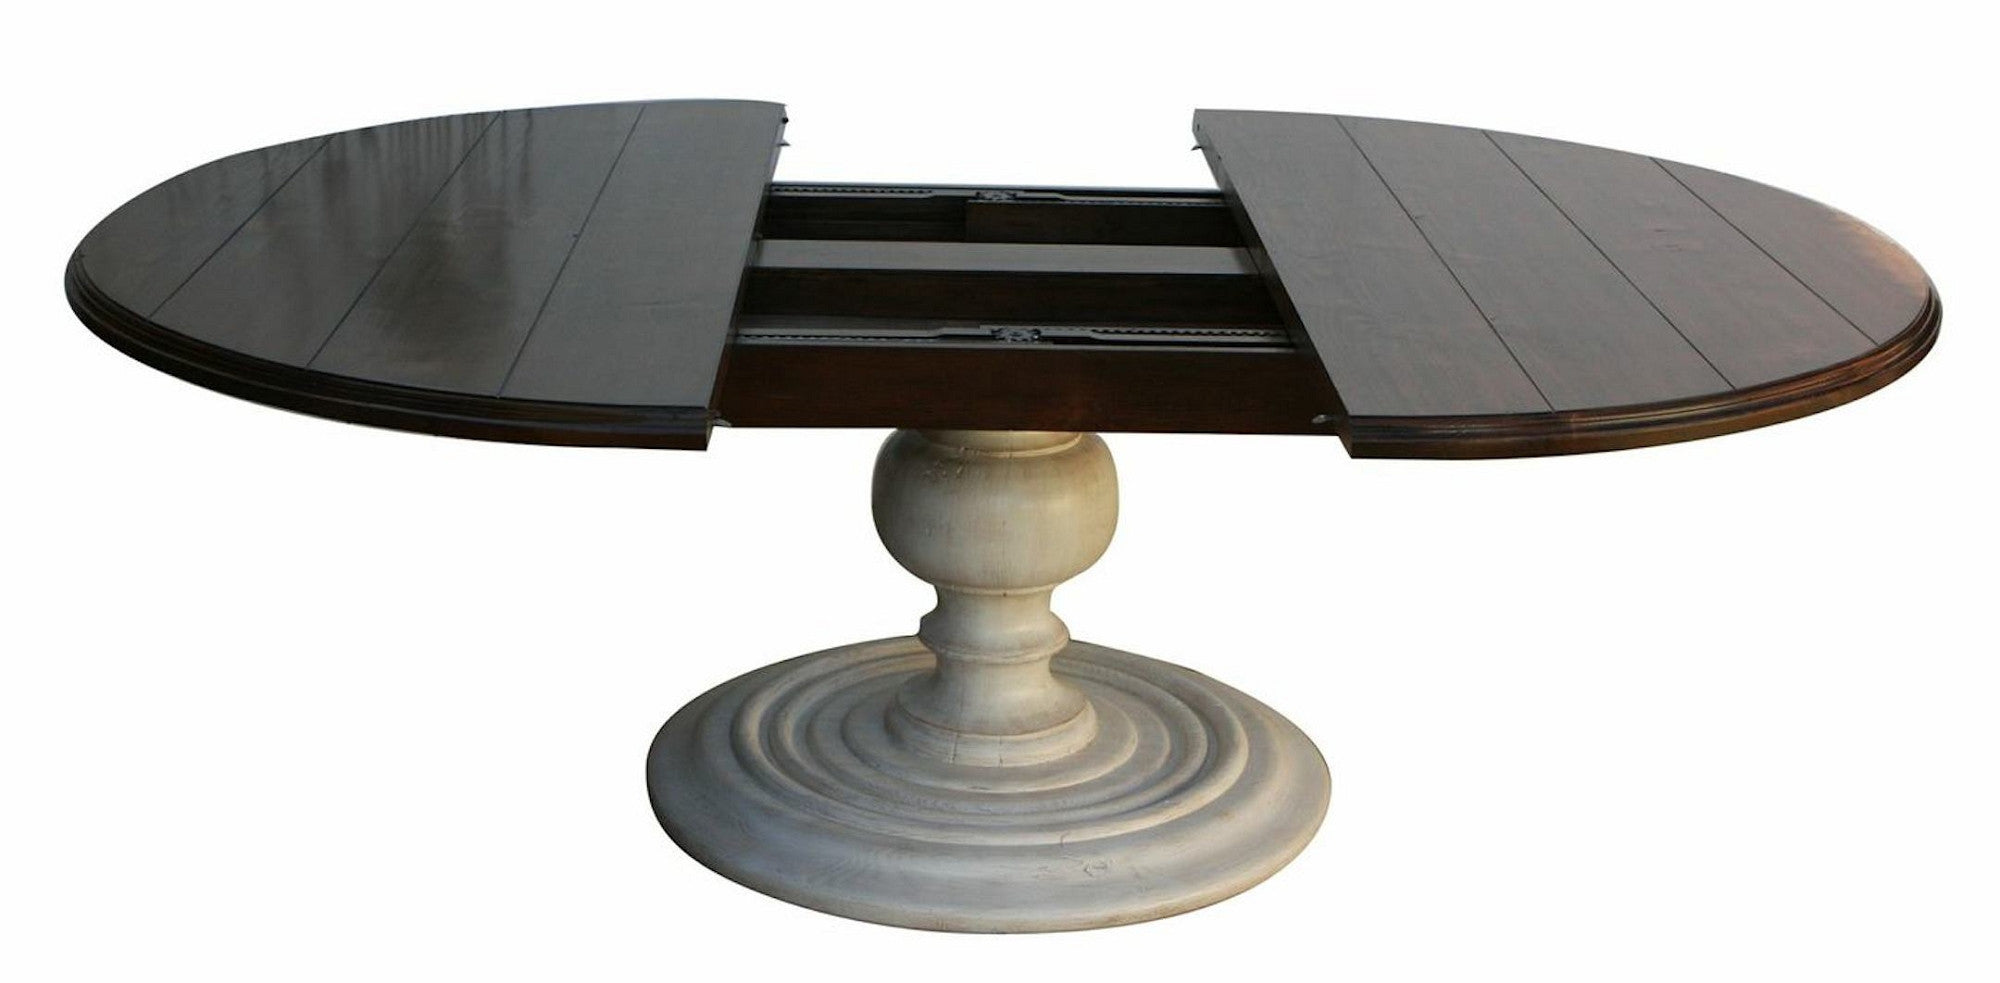 Dining Room Table Top Extension Round Pedestal Dining Table Wine Decor Corner Kitchen